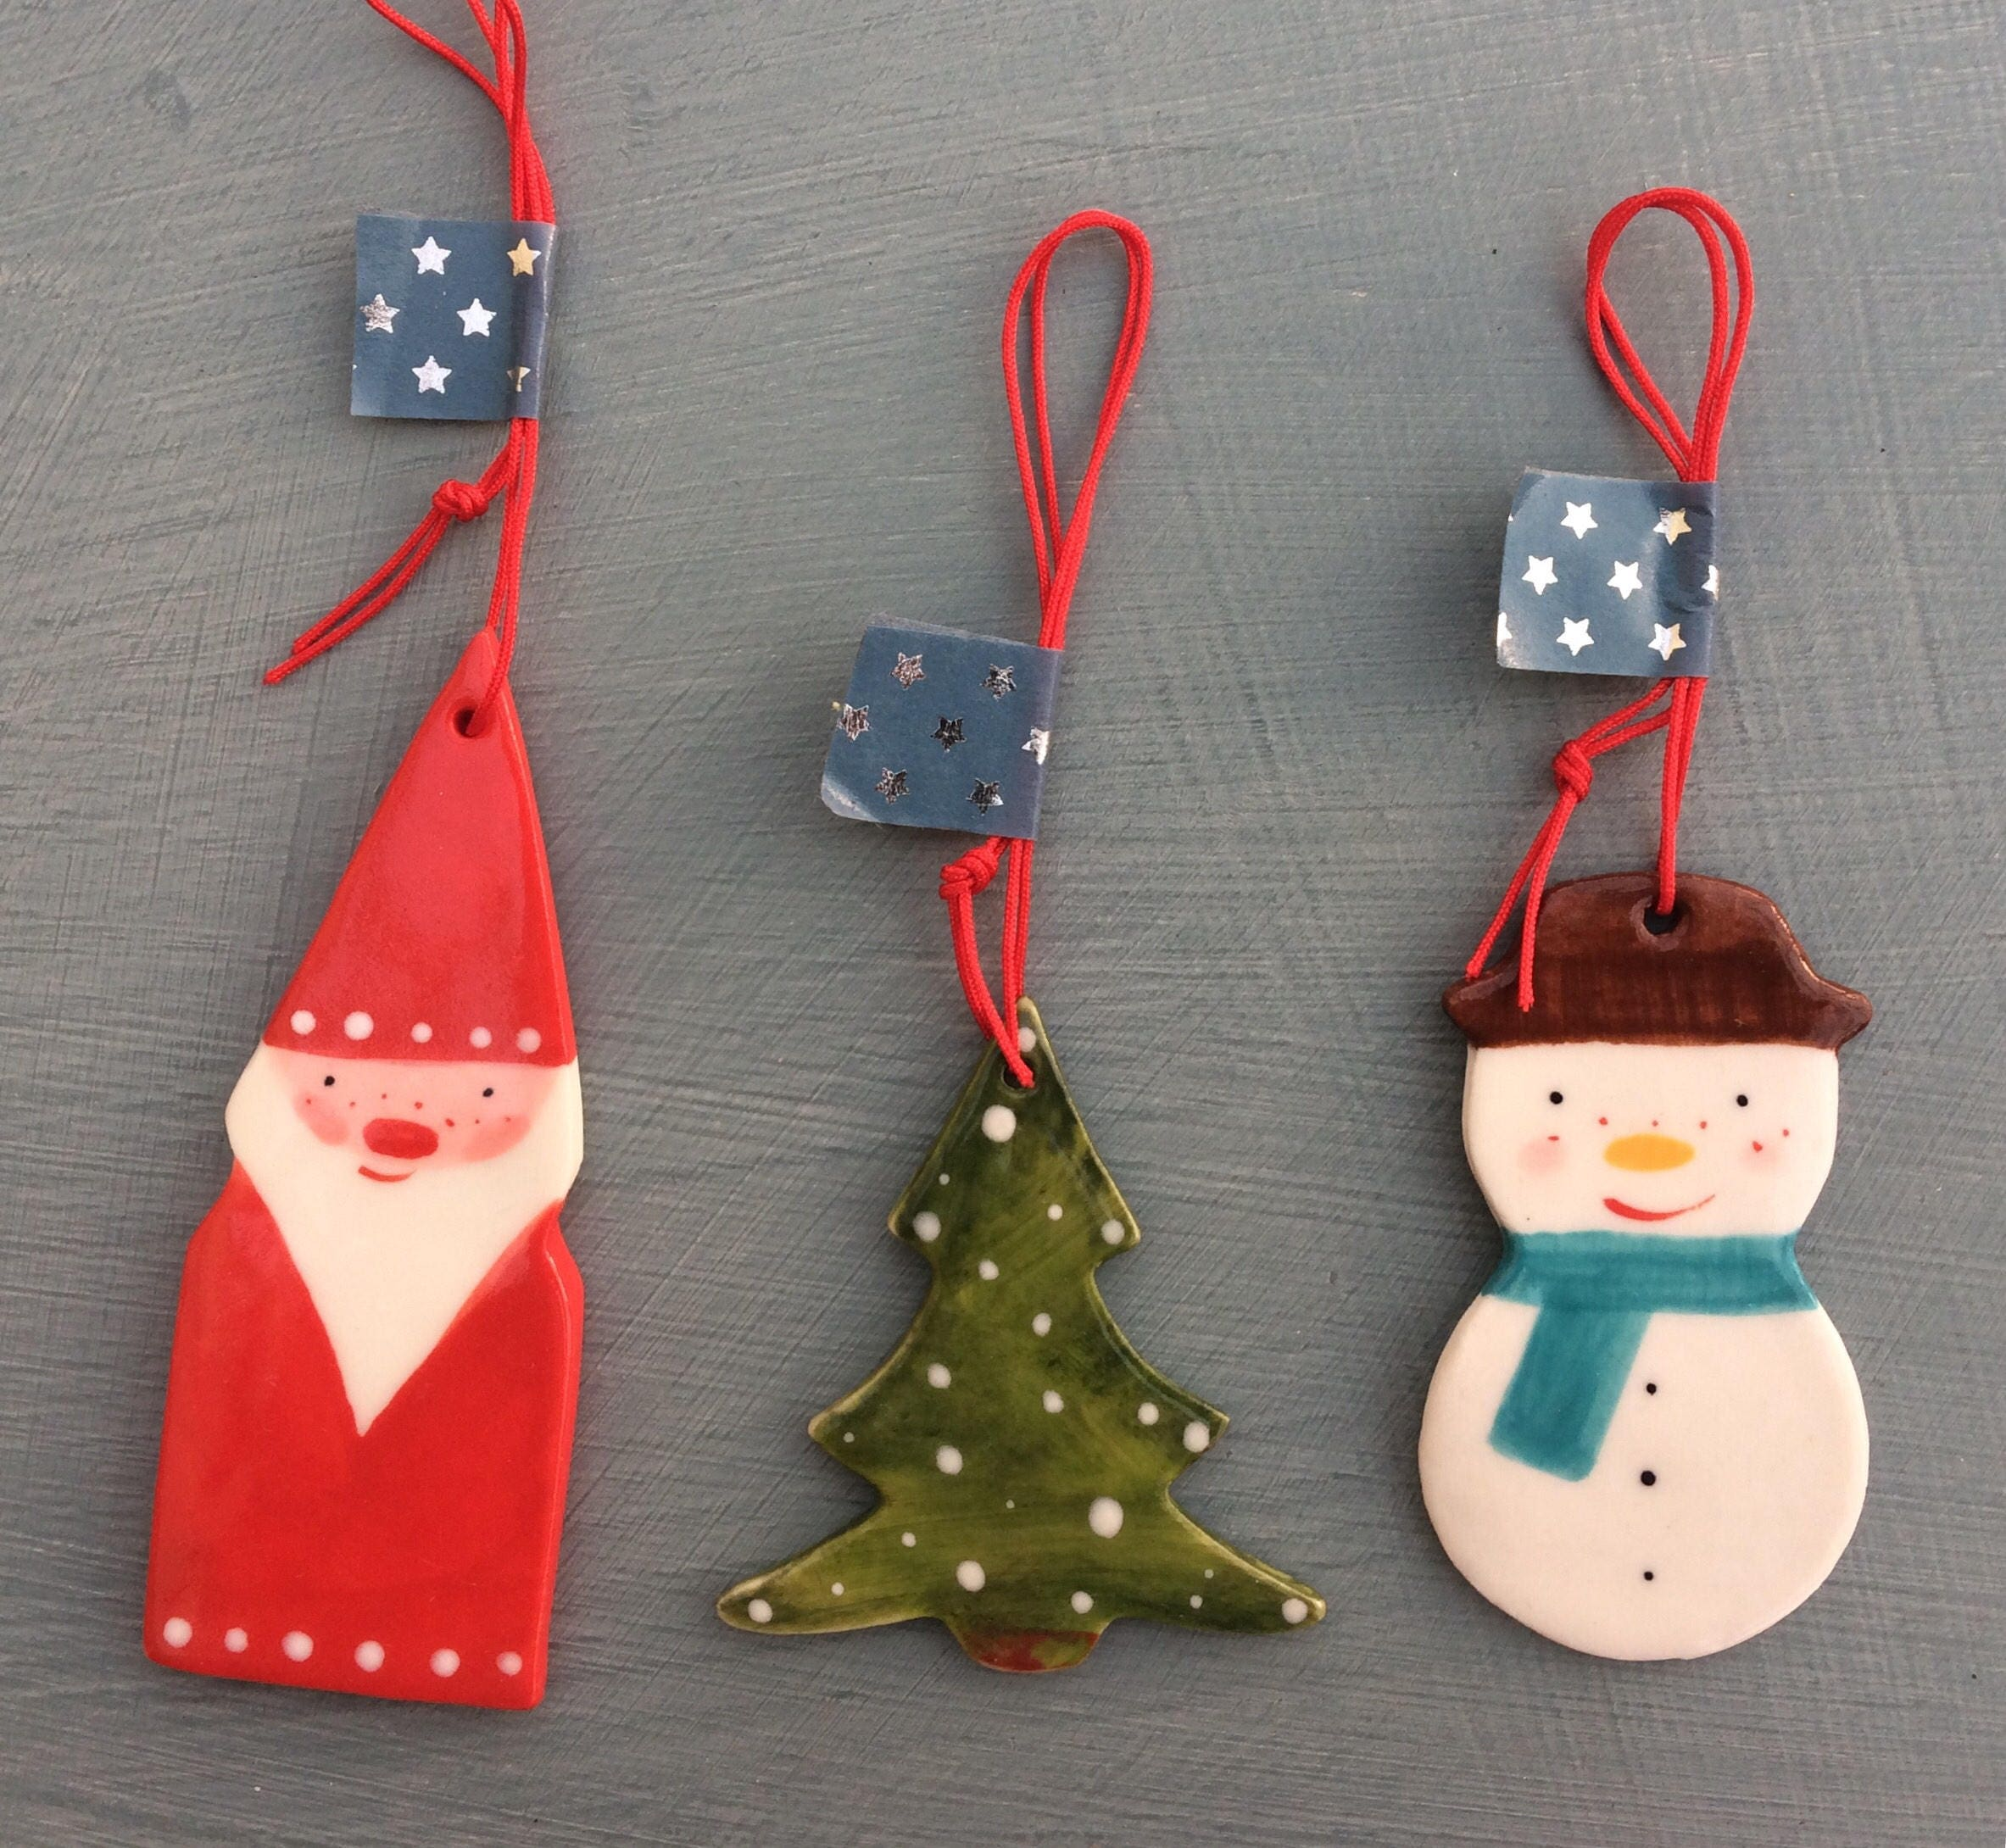 gallery photo gallery photo gallery photo - Ceramic Christmas Decorations